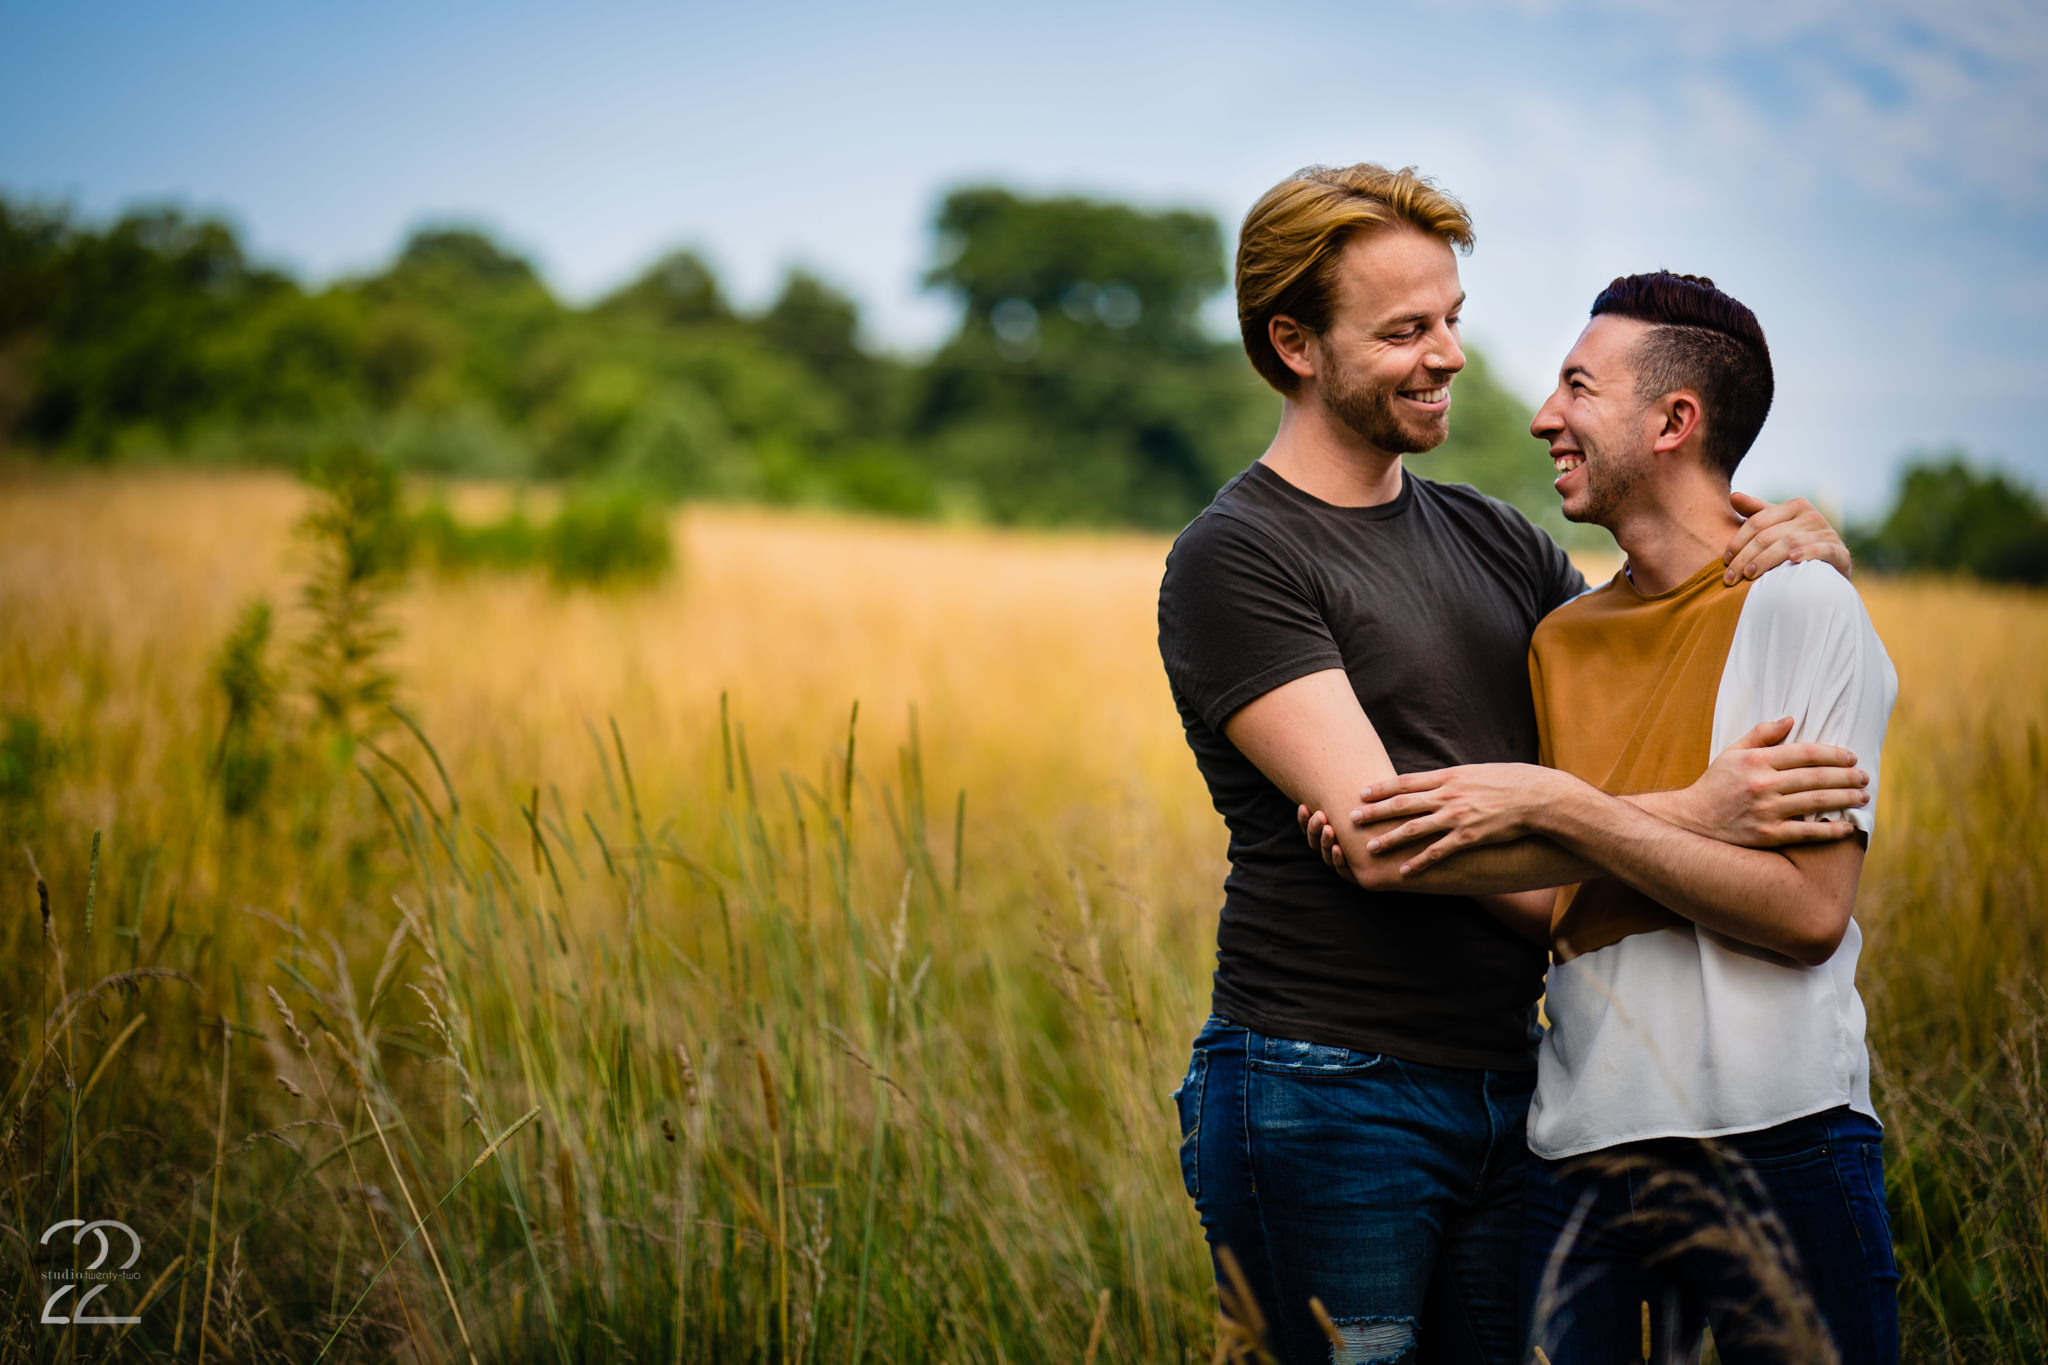 Outdoor Engagement Photos - LGBTQ Friendly Wedding Photographers